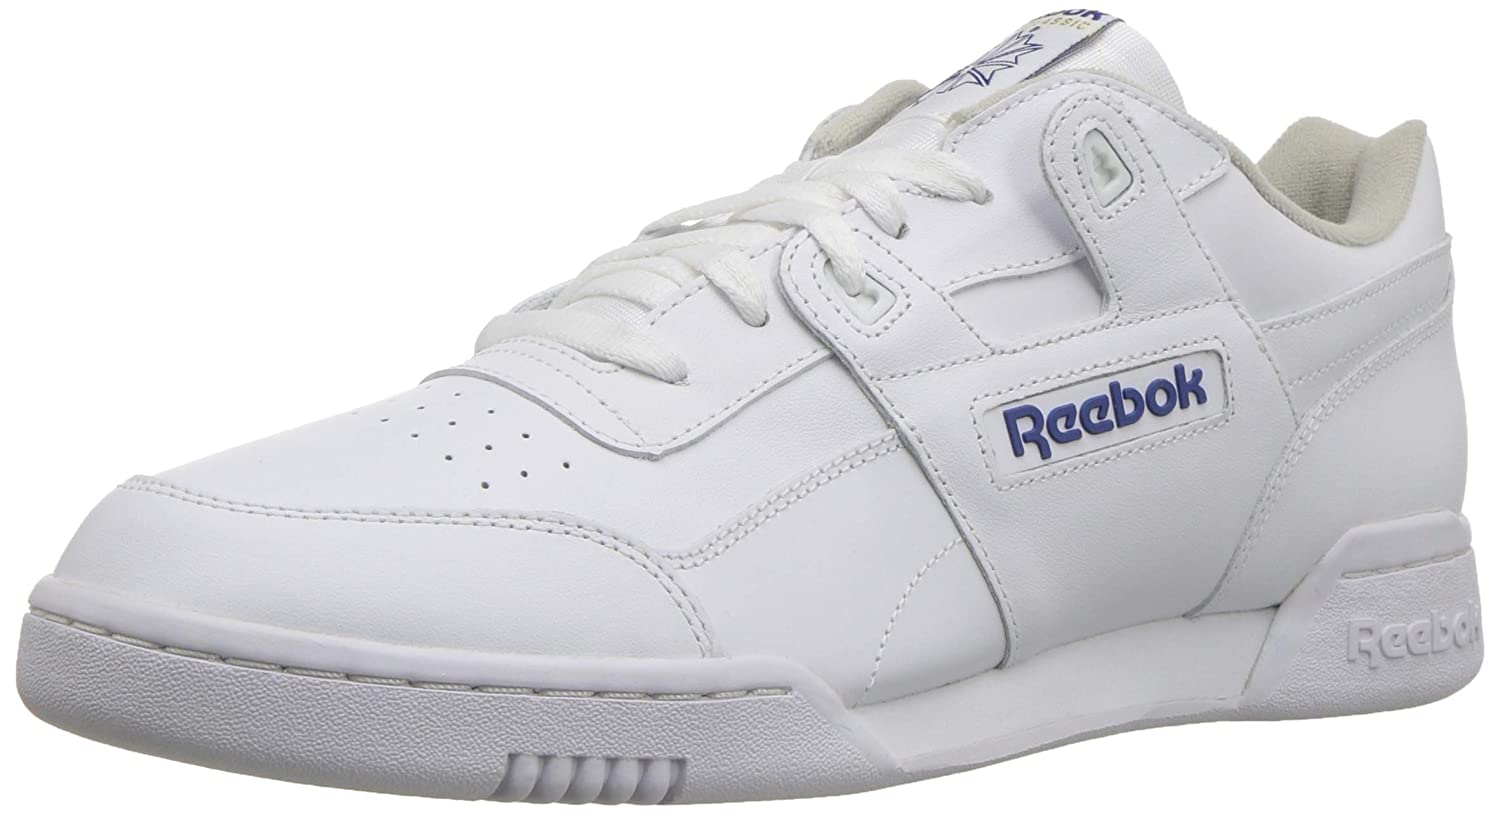 TALLA 43 EU. Reebok Workout Plus, Zapatillas Unisex Adulto